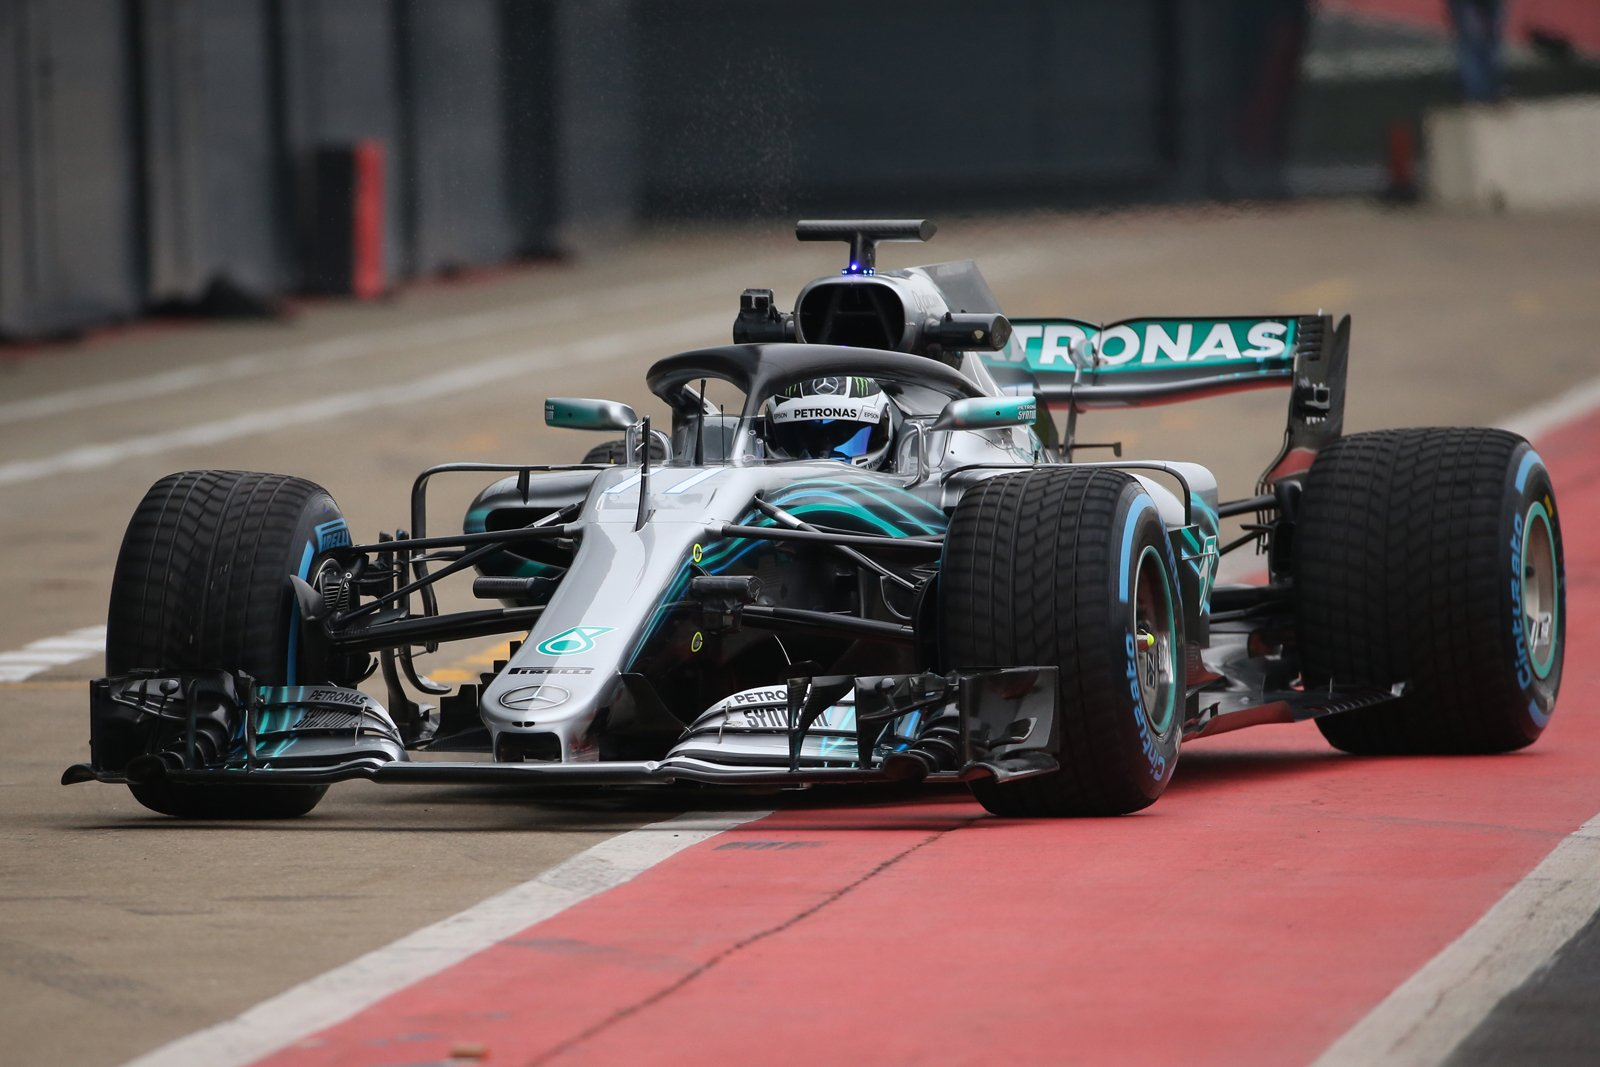 the latest mercedes amg f1 car looks absolutely bonkers news. Black Bedroom Furniture Sets. Home Design Ideas